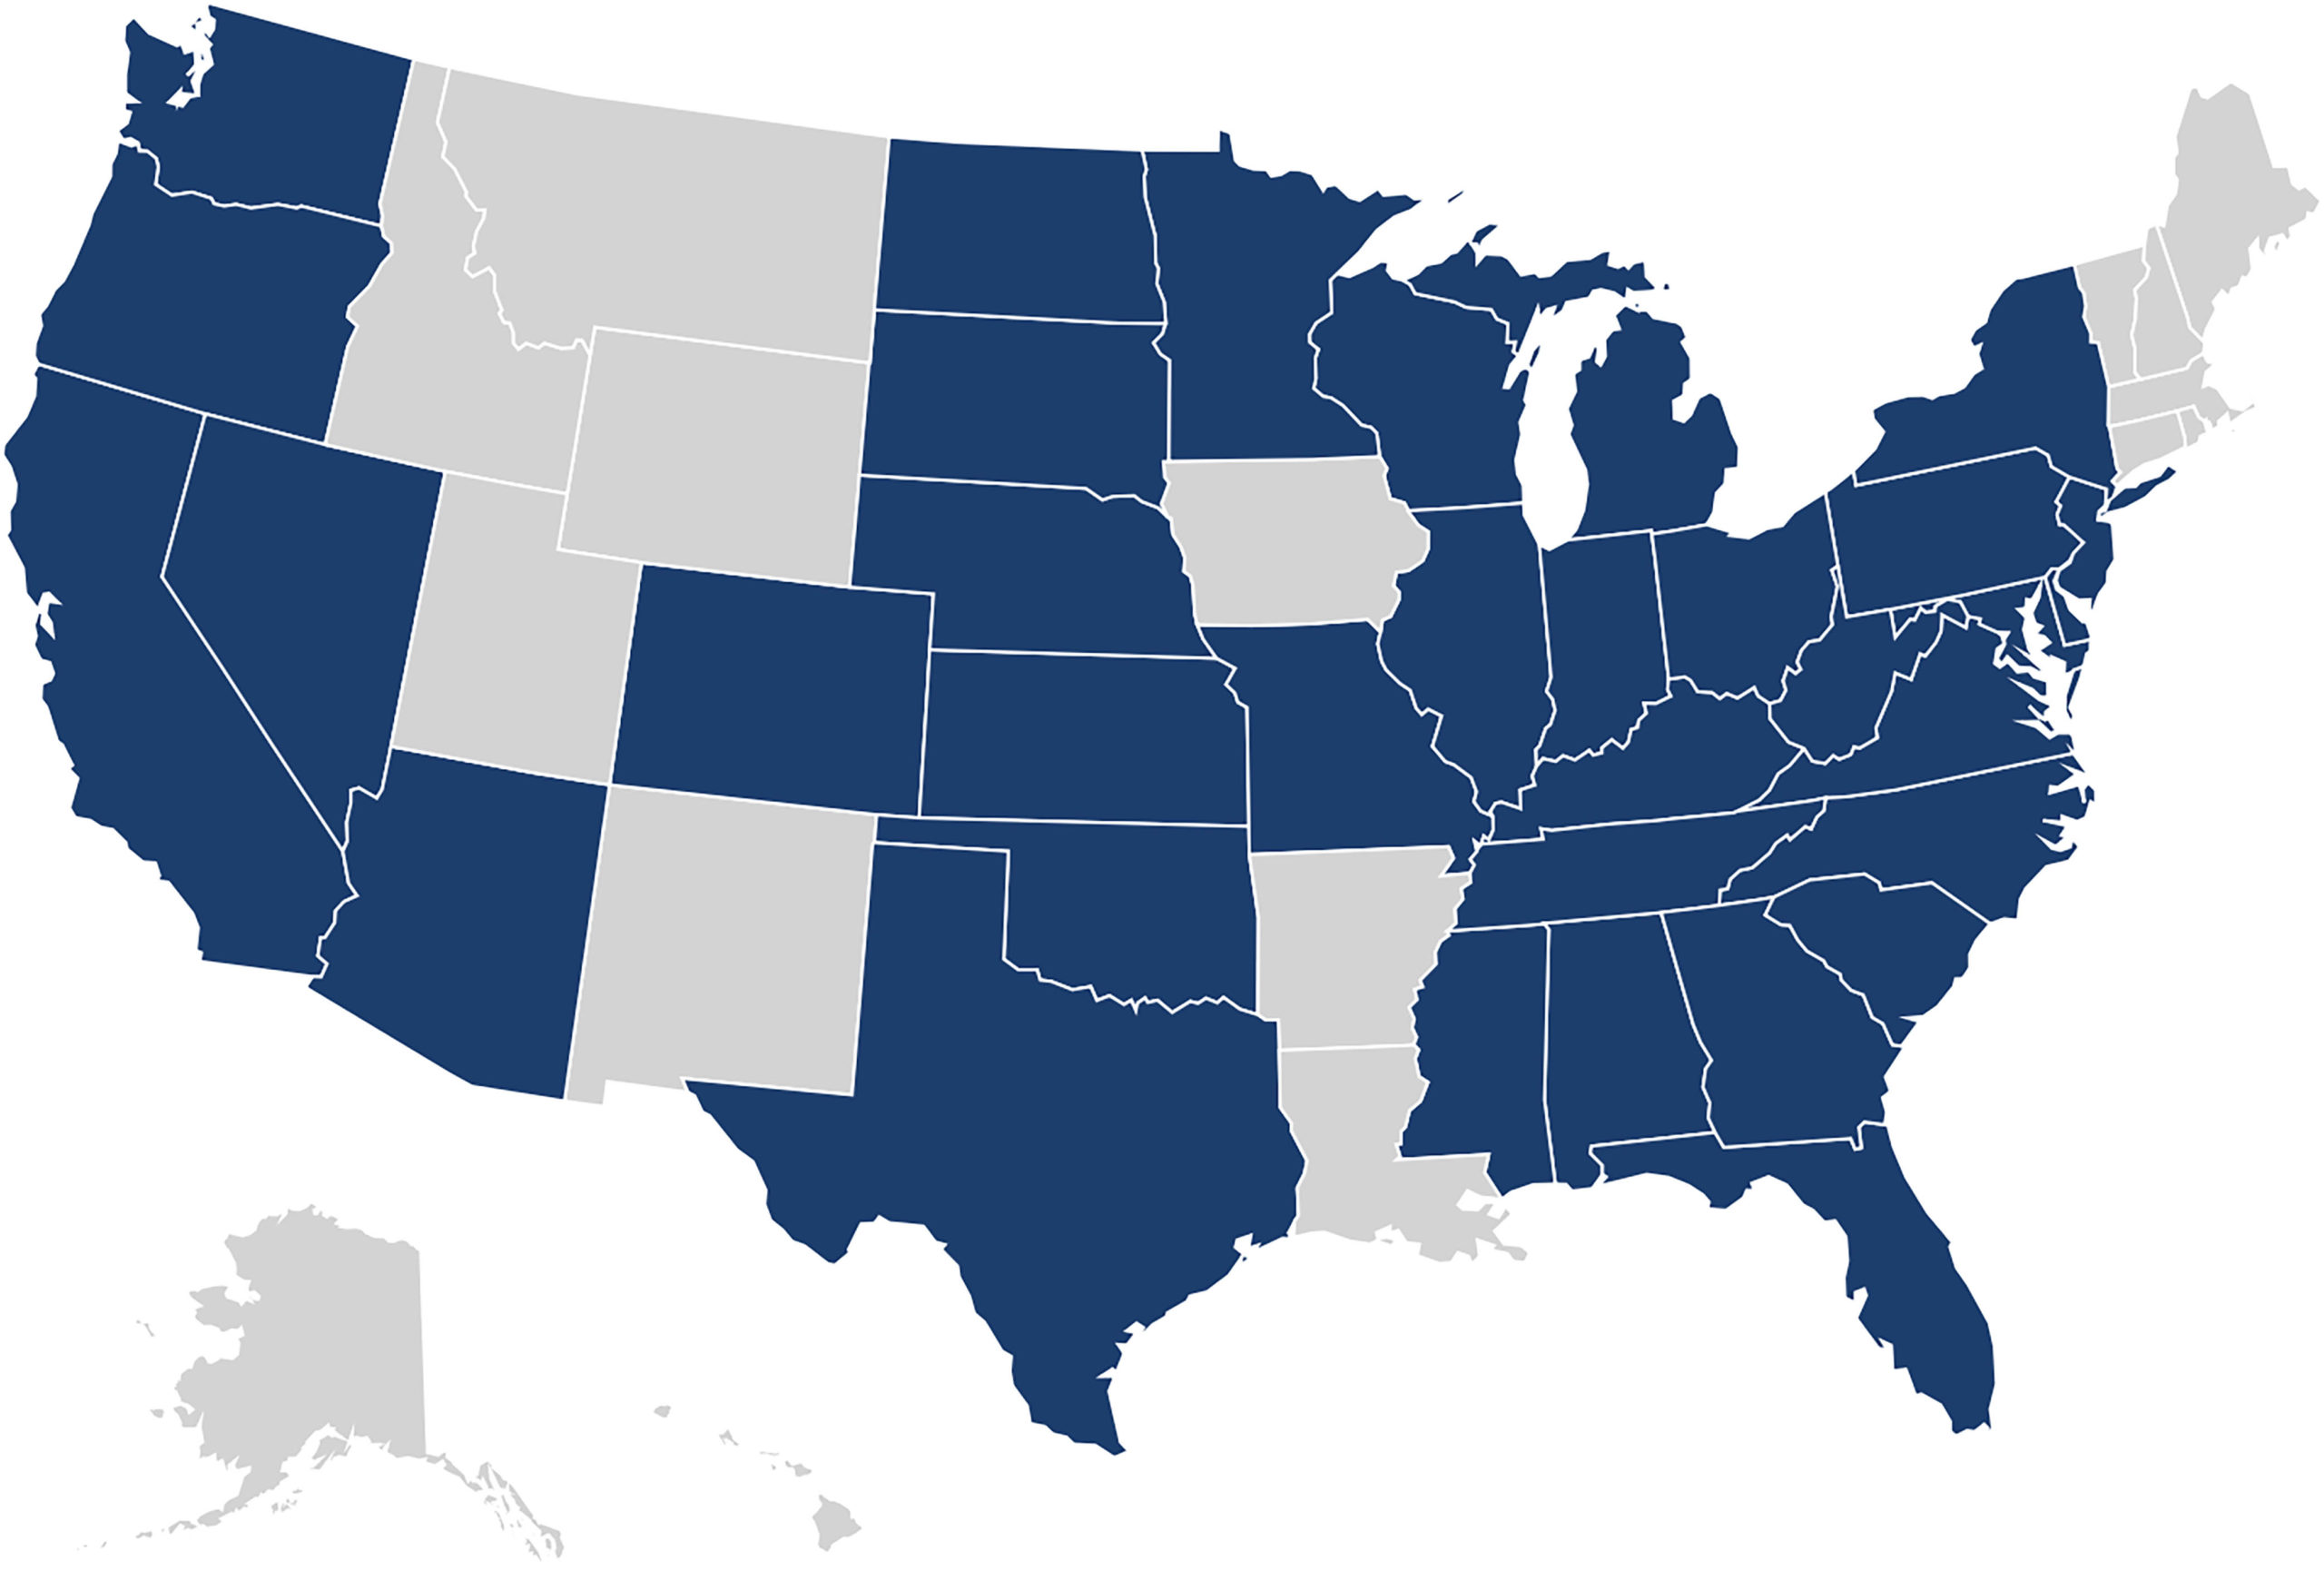 Map of states where health centers are present